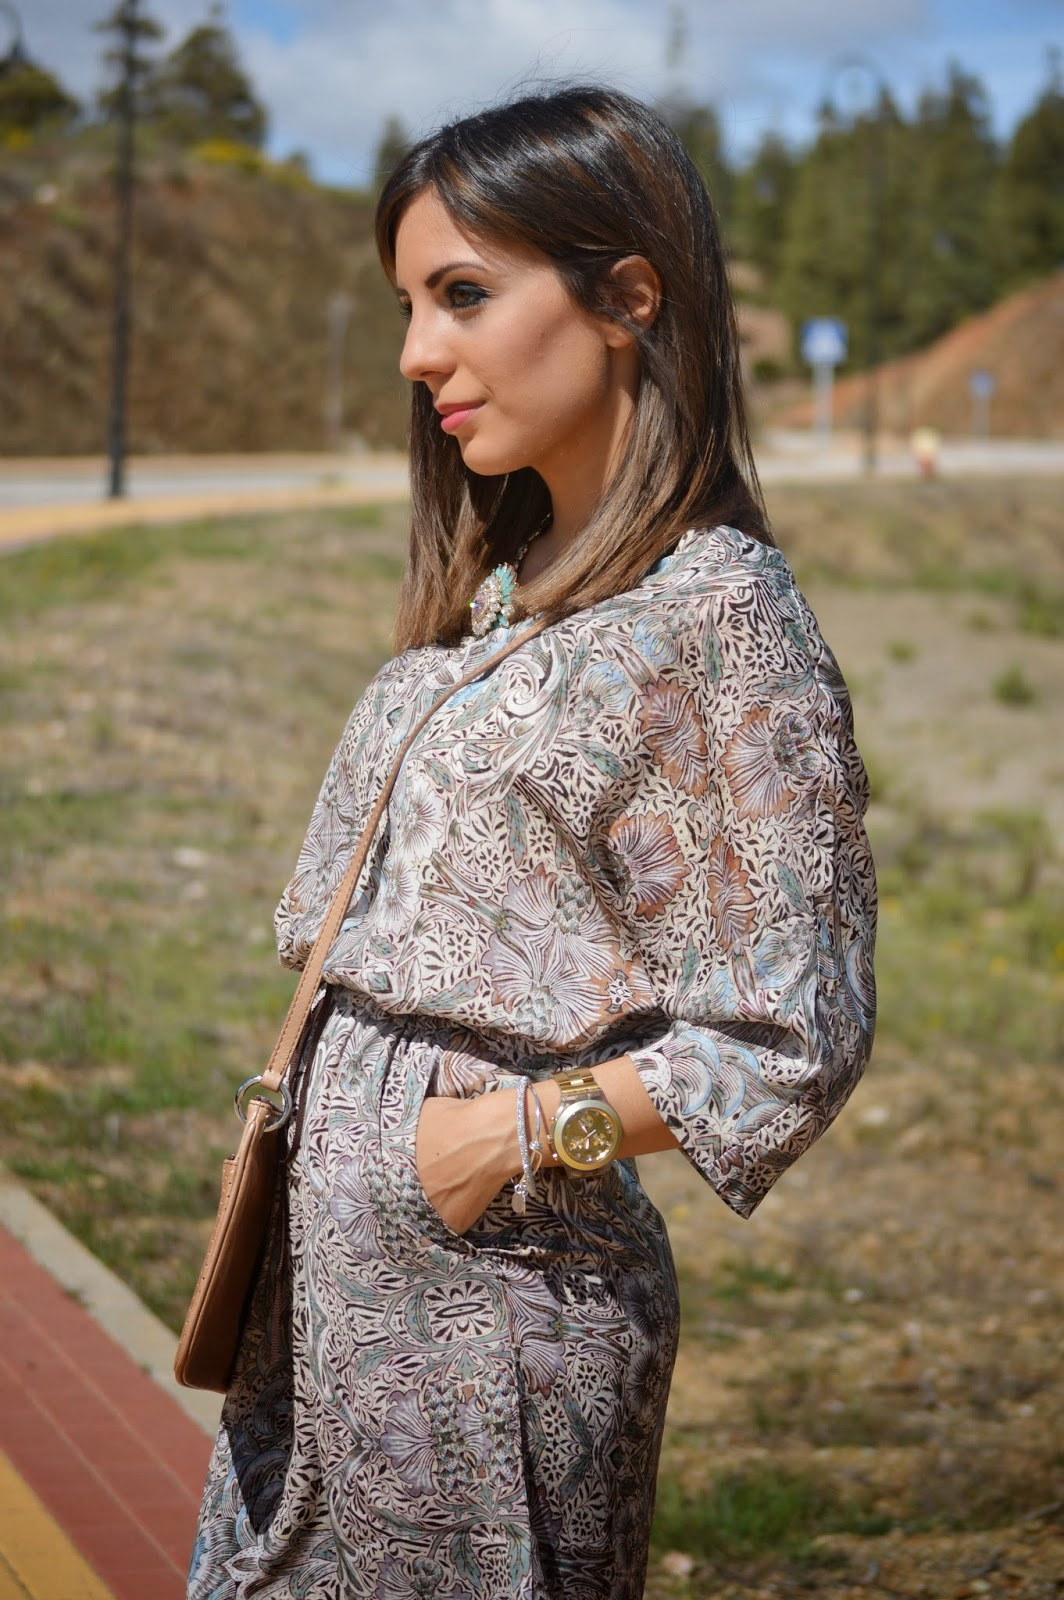 street style mango zara fashion blogger malagueña blogger malagueña cristina style outfit look style ootd chic casual dress gorgeous inspiration moda mood tendencias trendy lovely jacket